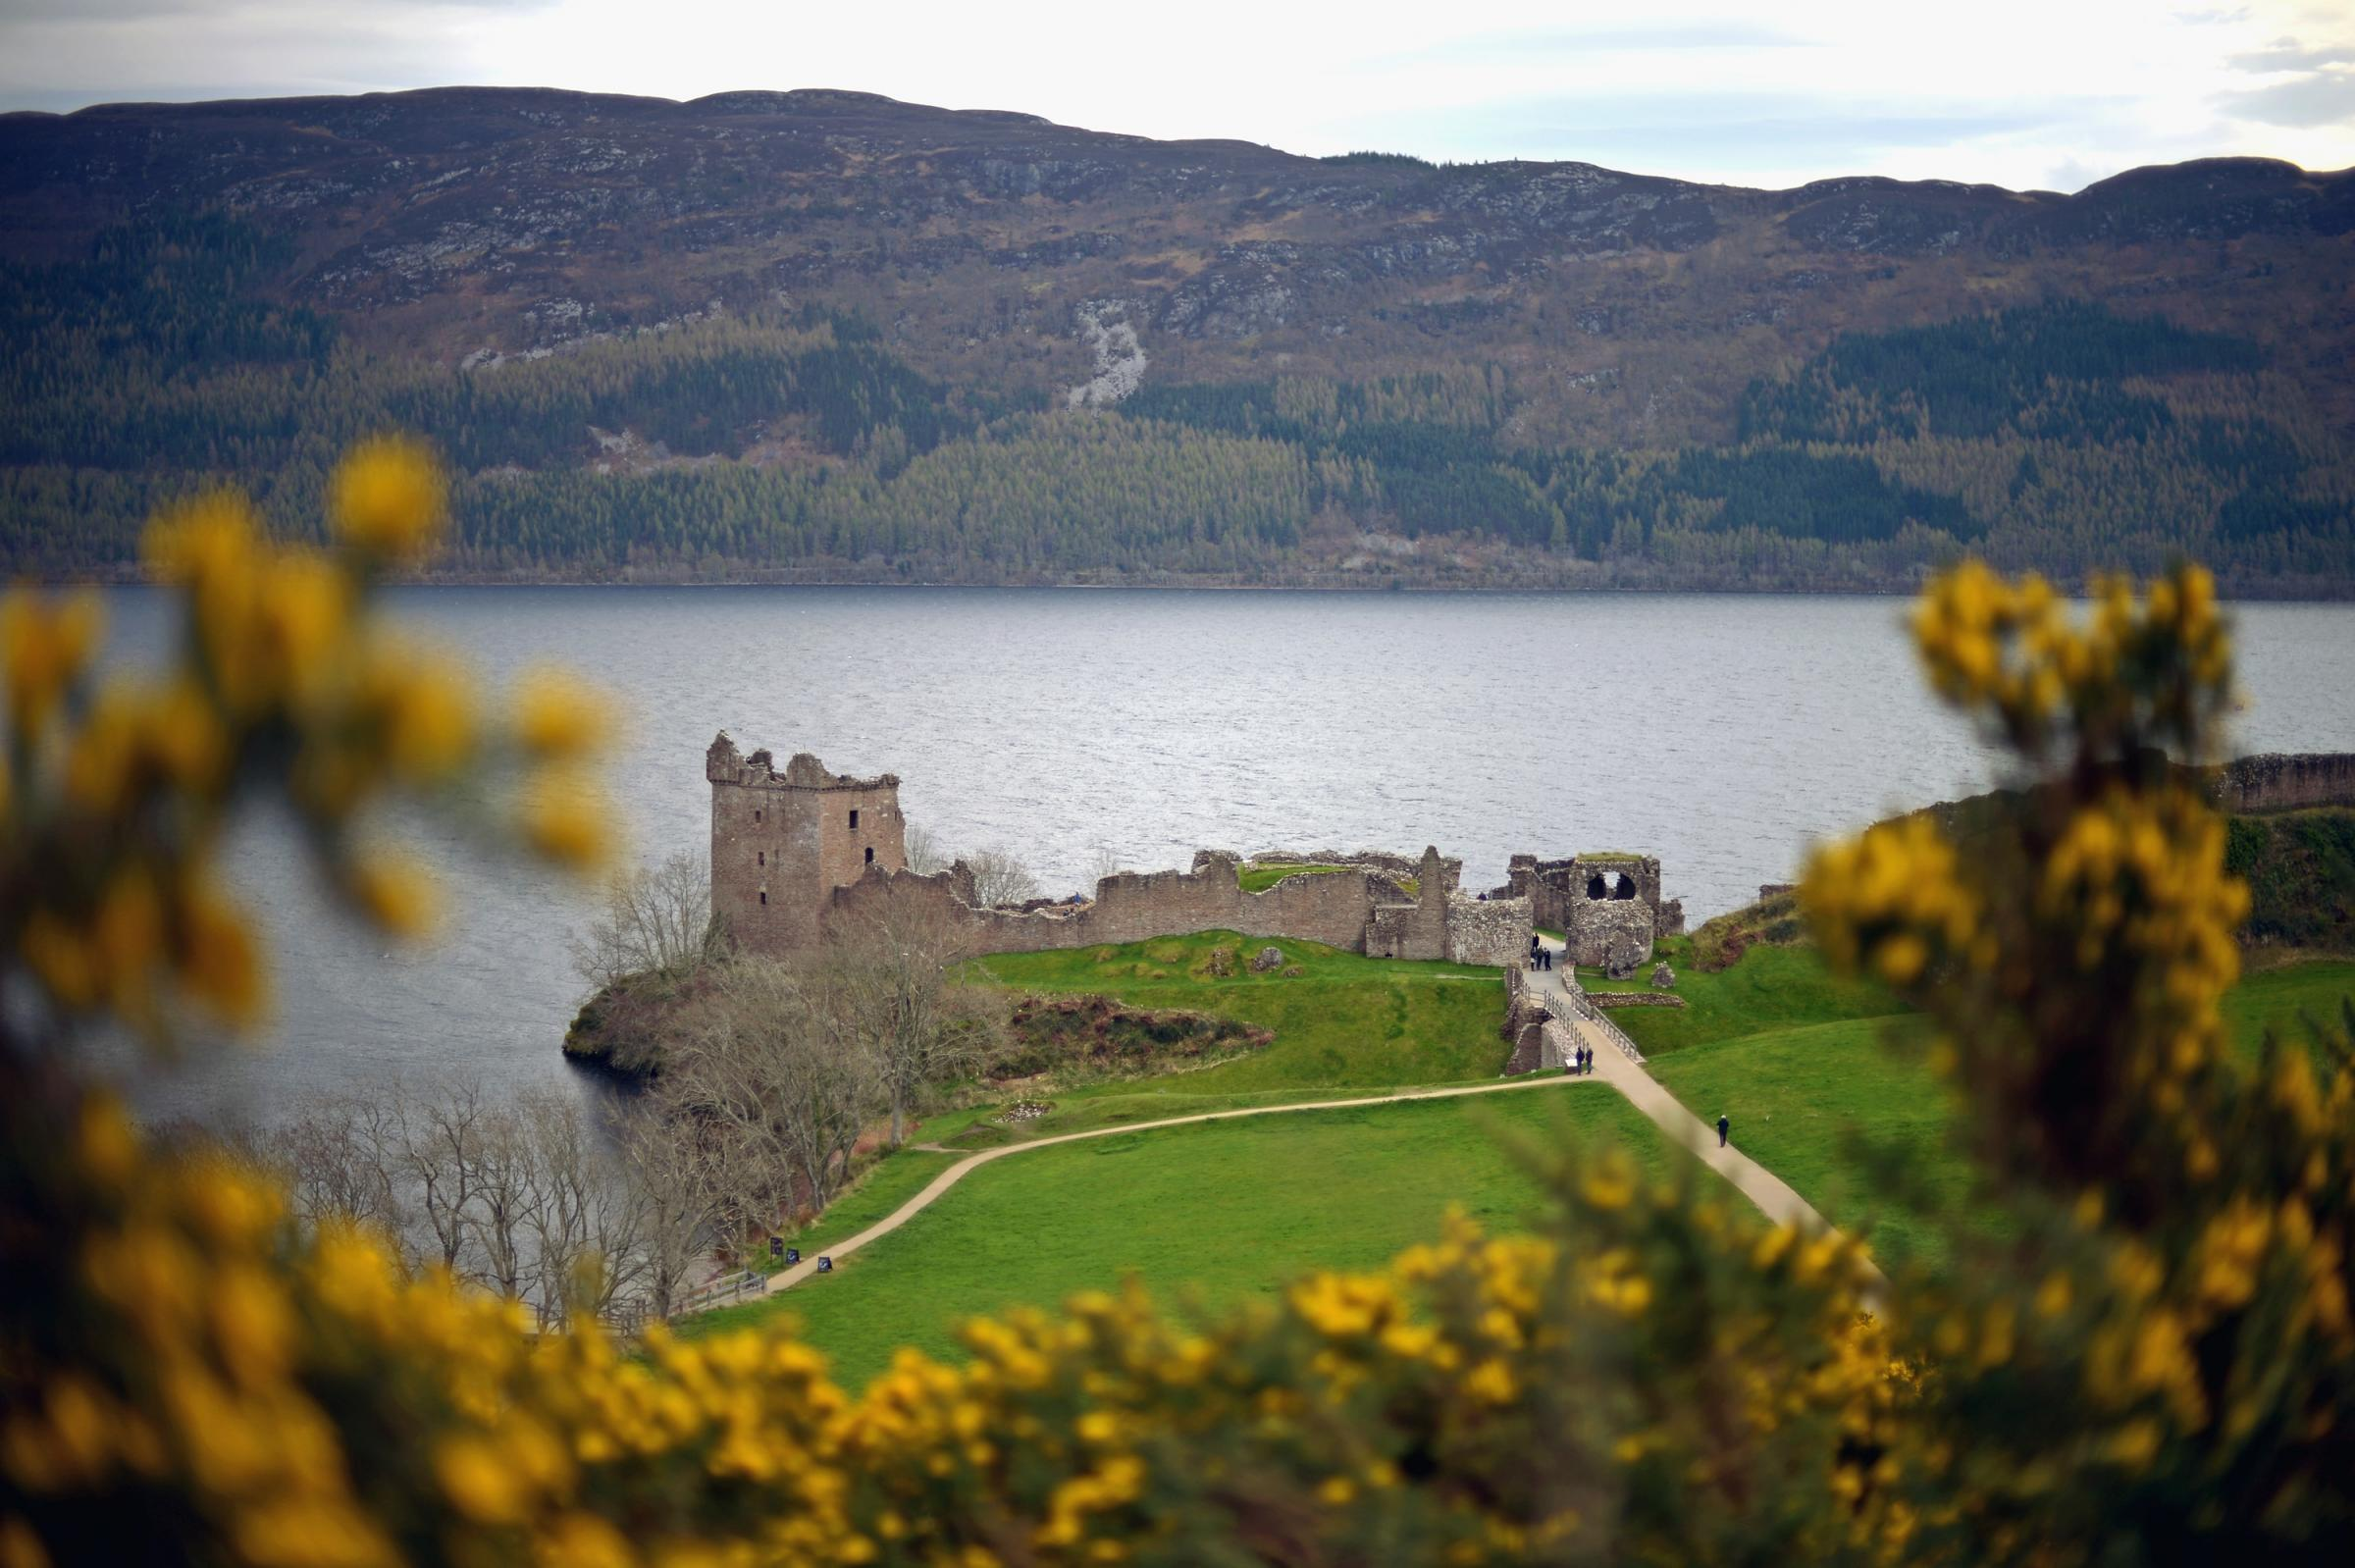 Urquhart Castle, one of Inverness's key attractions, offers panoramic views of Loch Ness